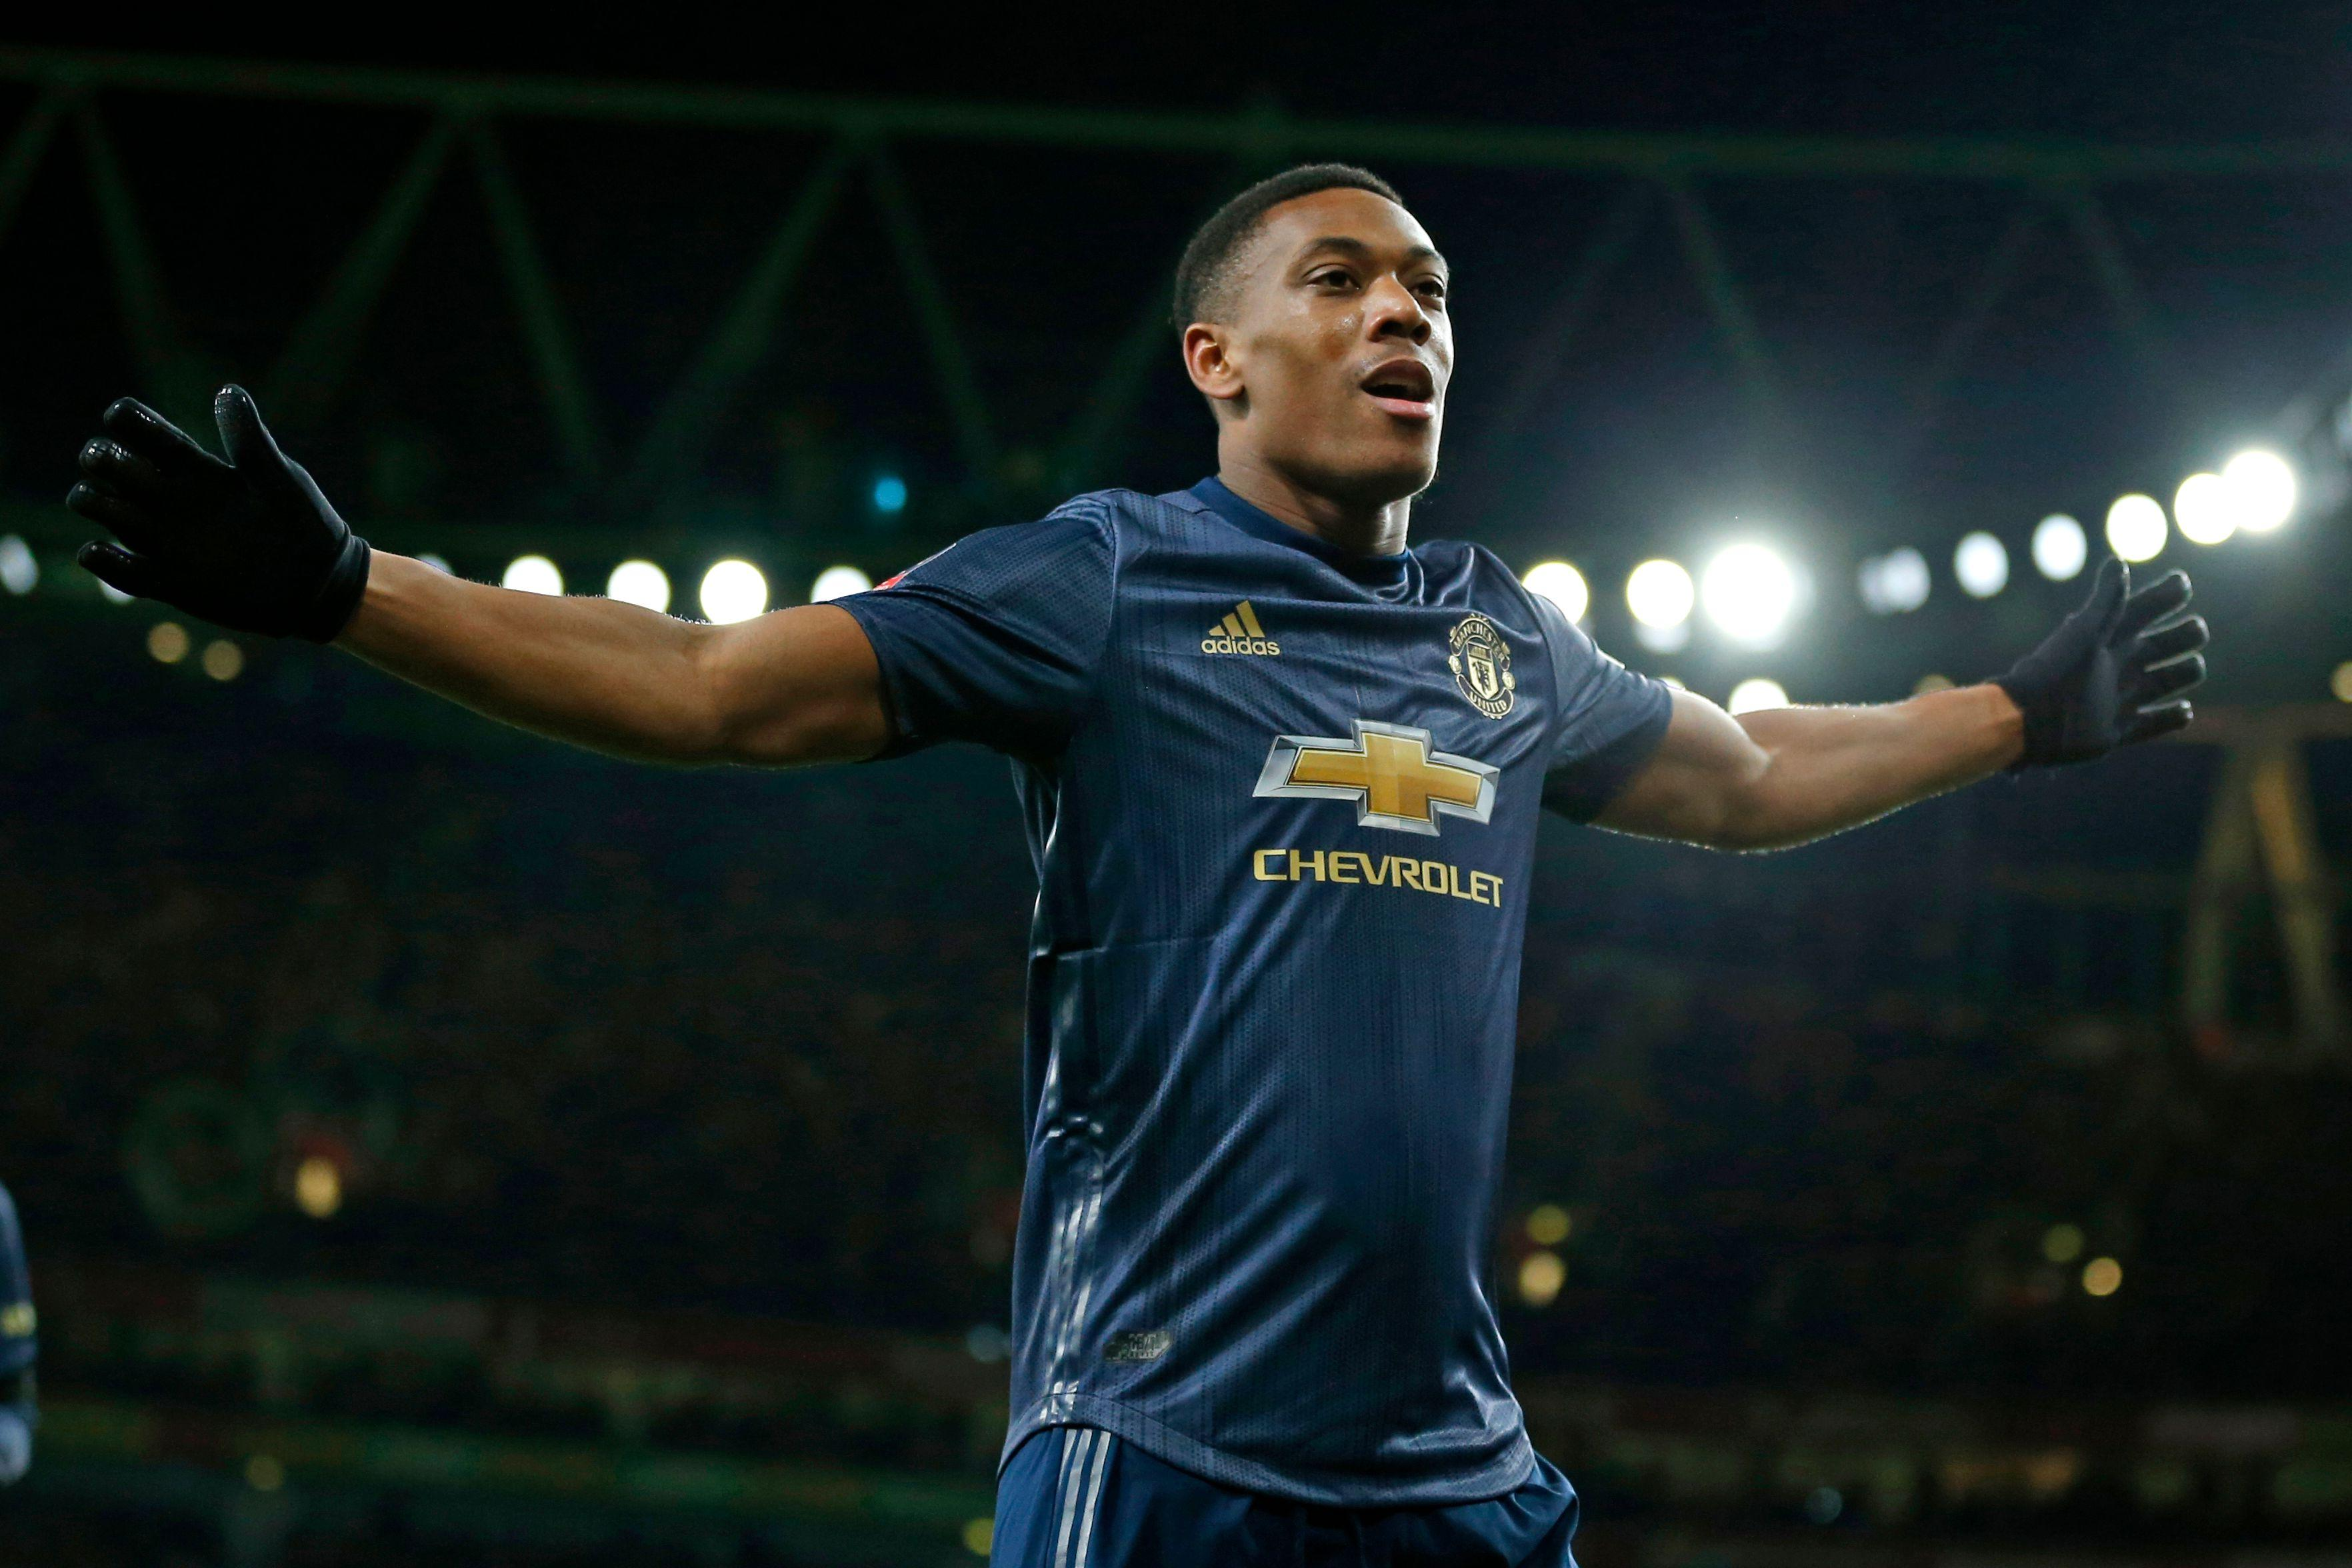 Anthony Martial has agreed a new five-year contract but Rashford is yet to commit